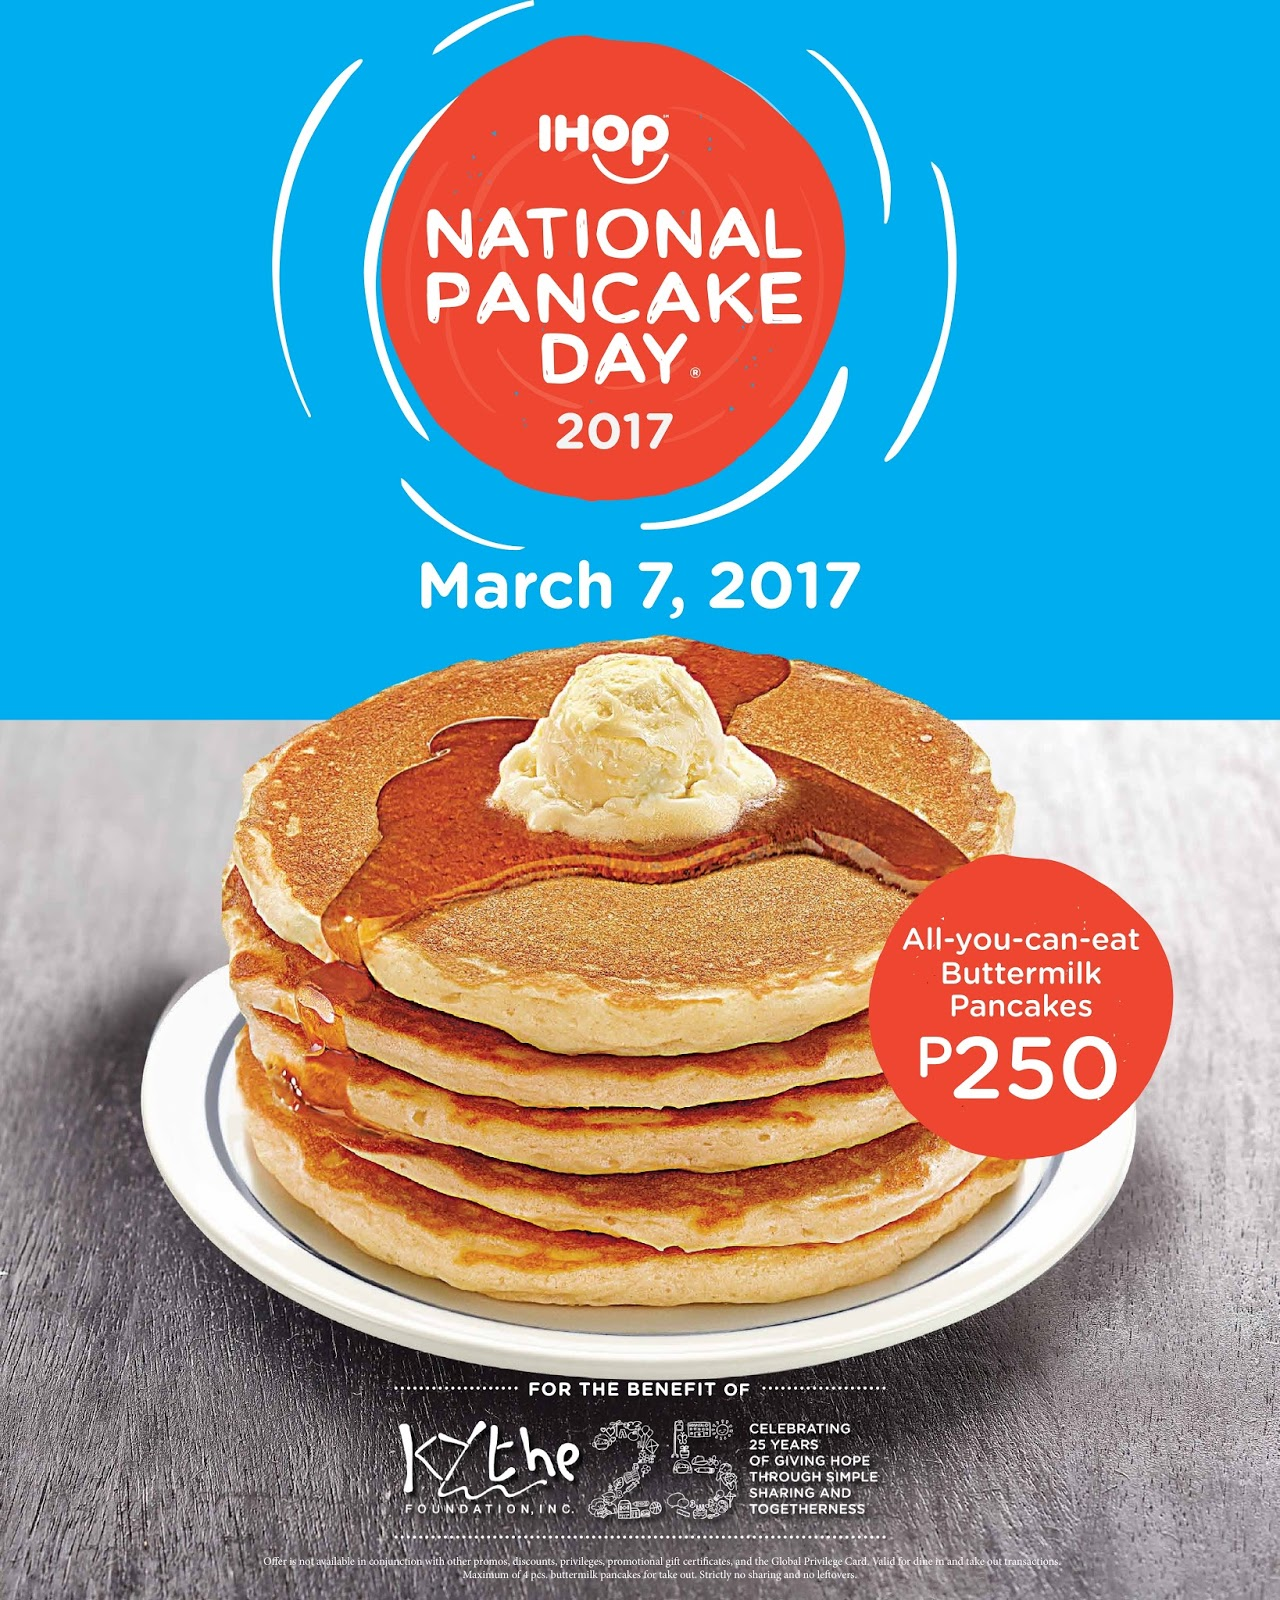 Sand Under My Feet Spread Happiness with IHOP on National Pancake Day